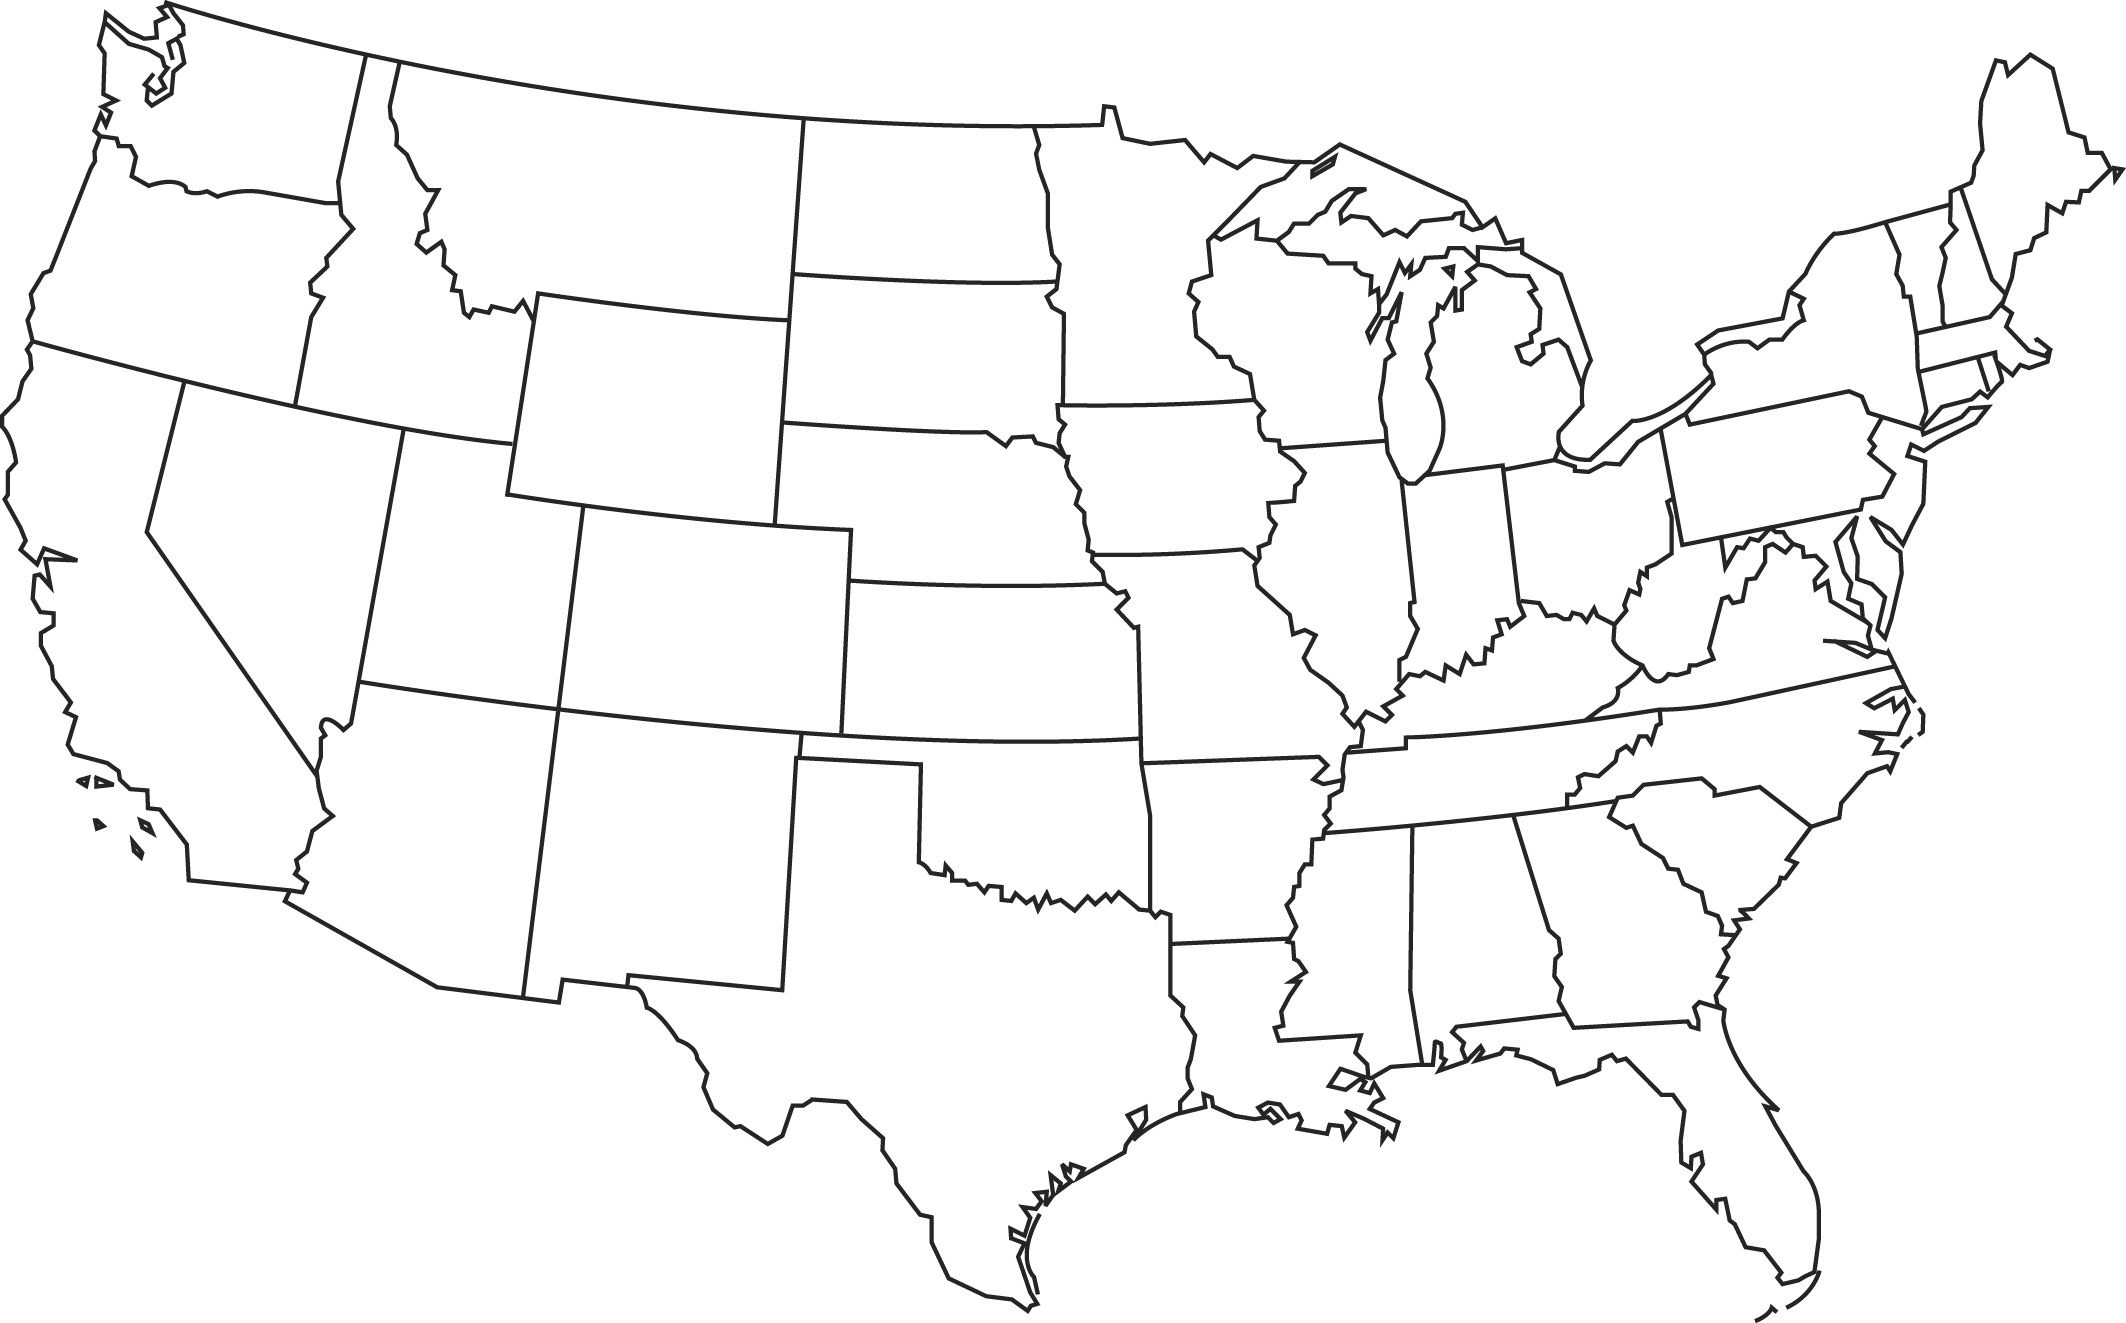 Blank Printable Map Of The Us Clipart Best Clipart Best | Centers - Free Printable Map Of United States With States Labeled